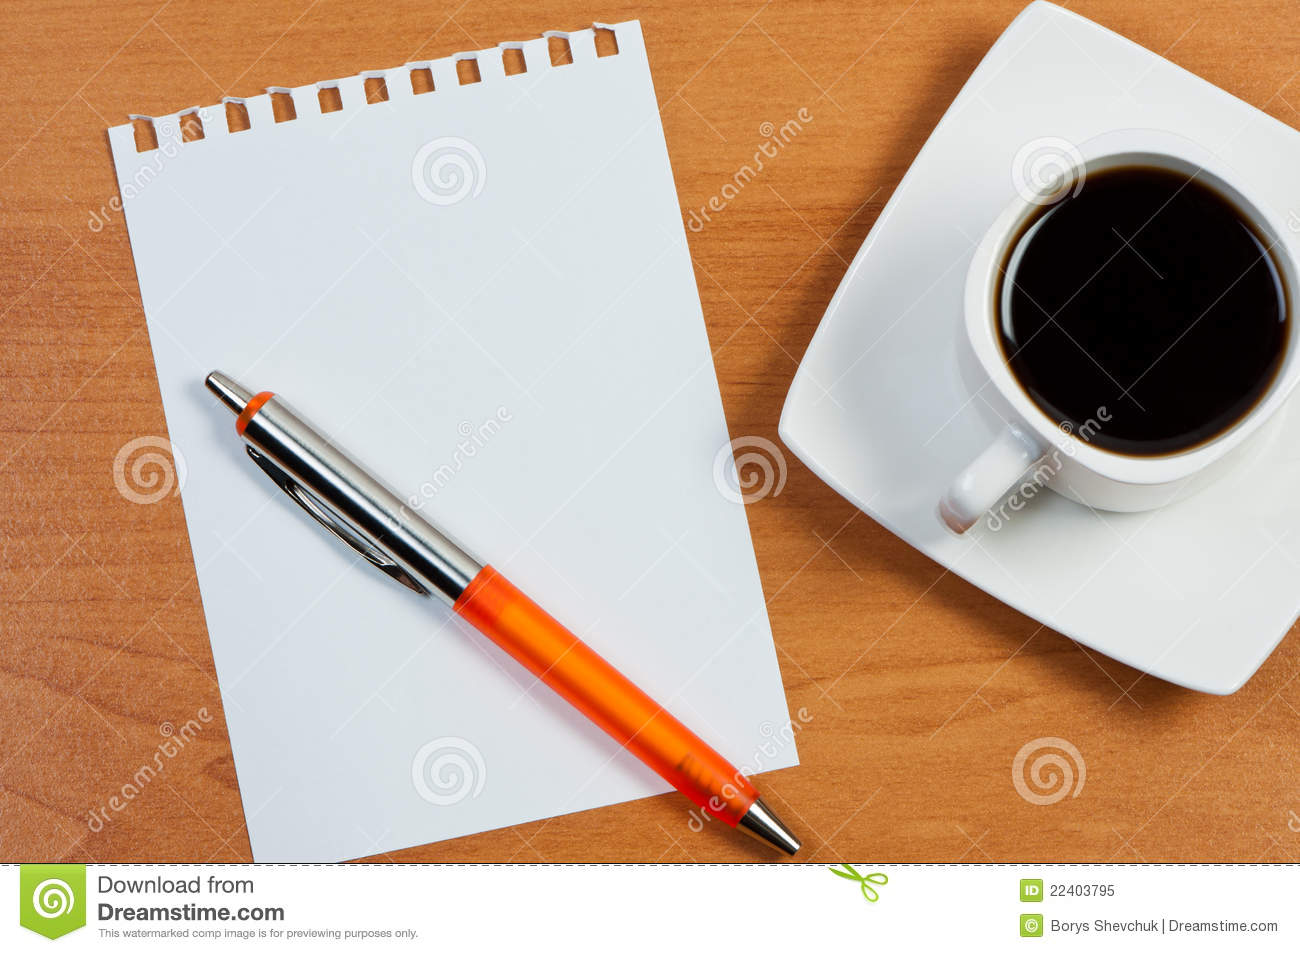 Worksheet With Pen And Coffee Stock Image